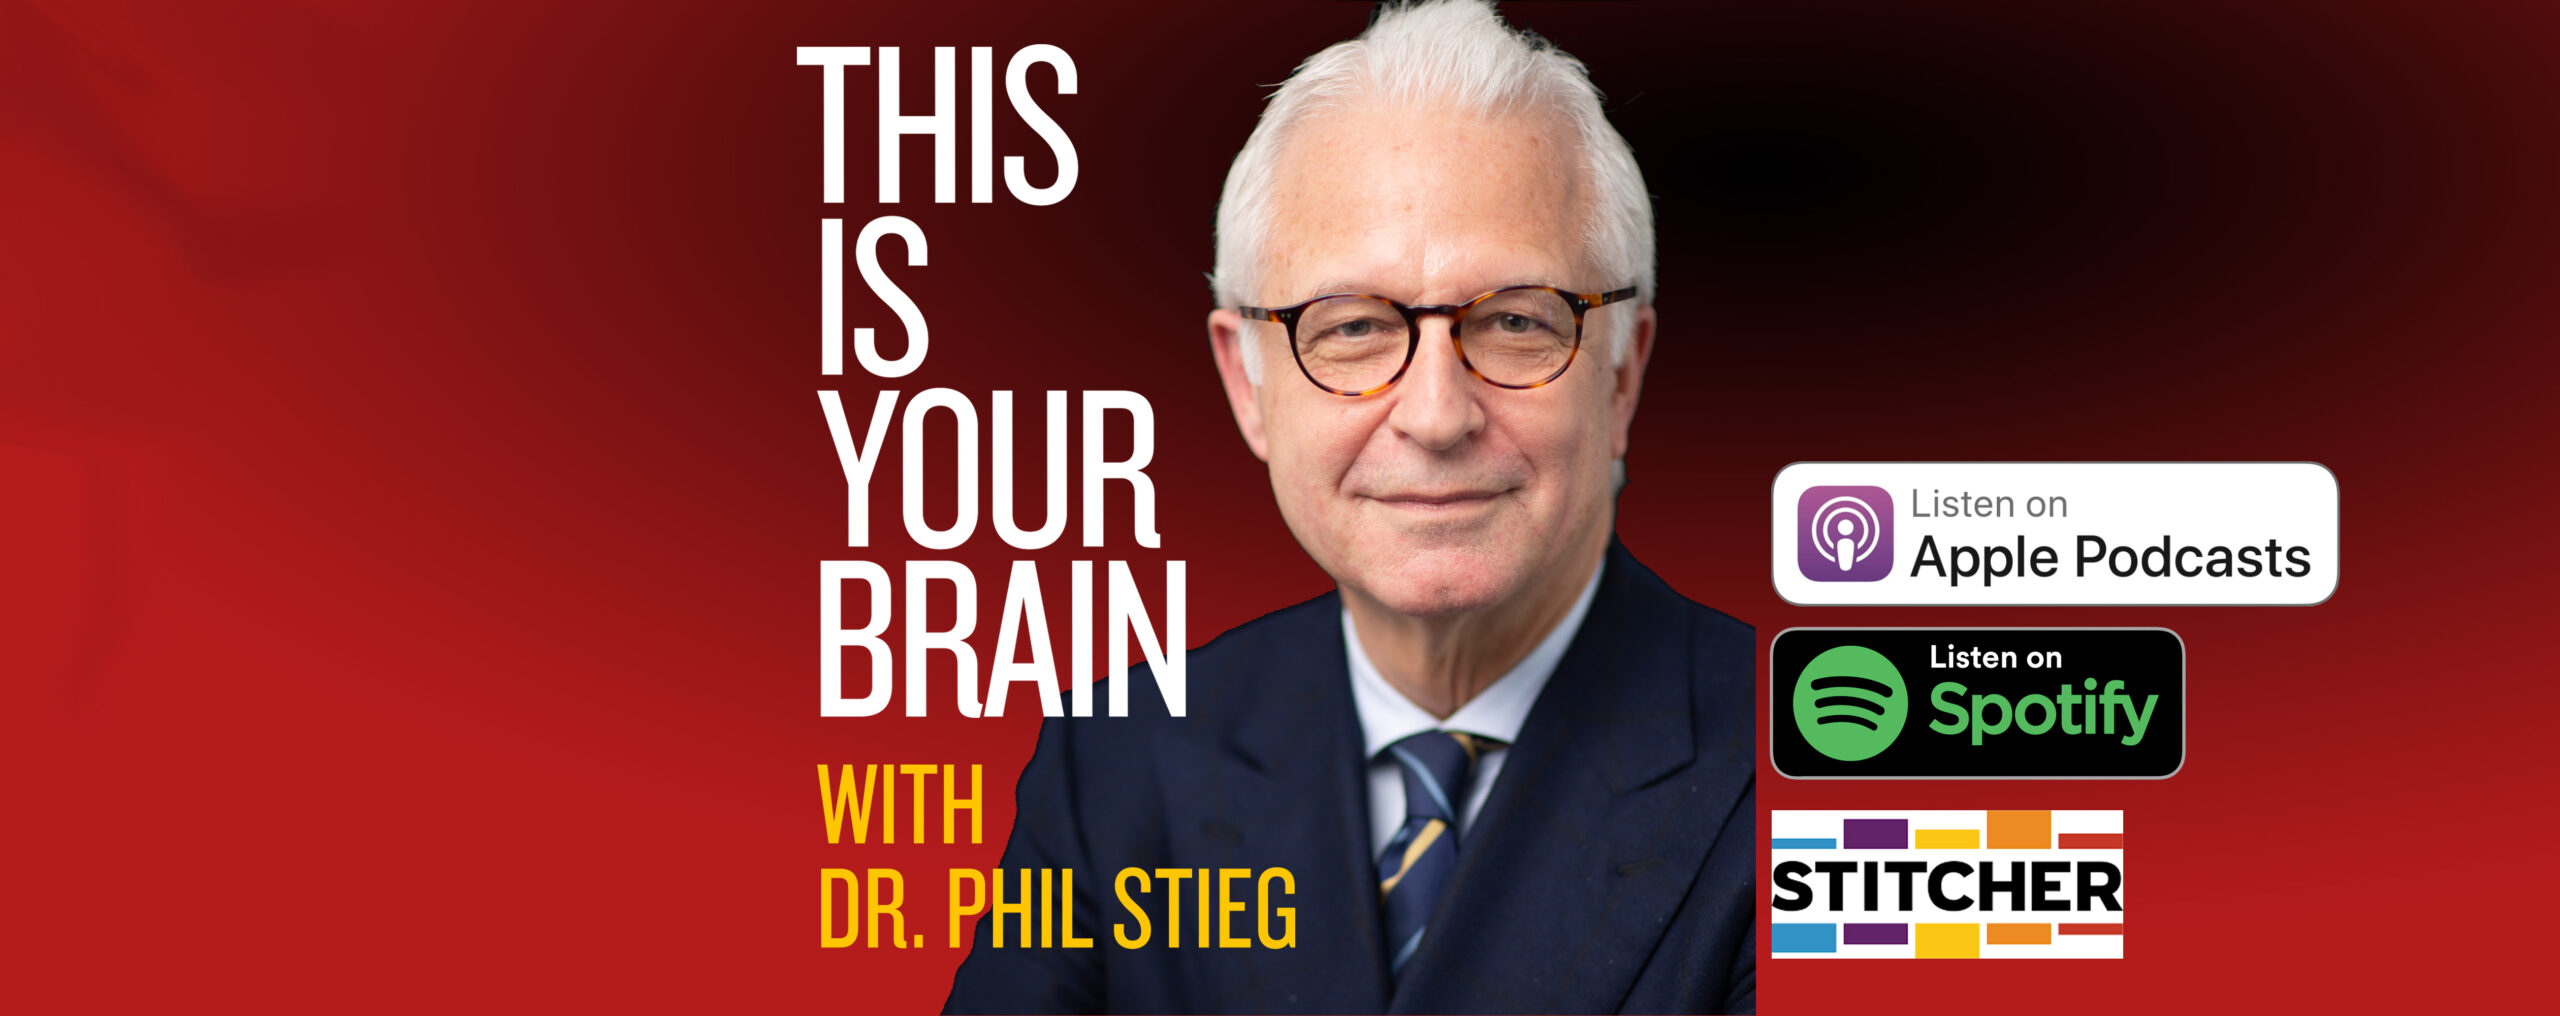 This Is Your Brain With Dr. Phil Stieg